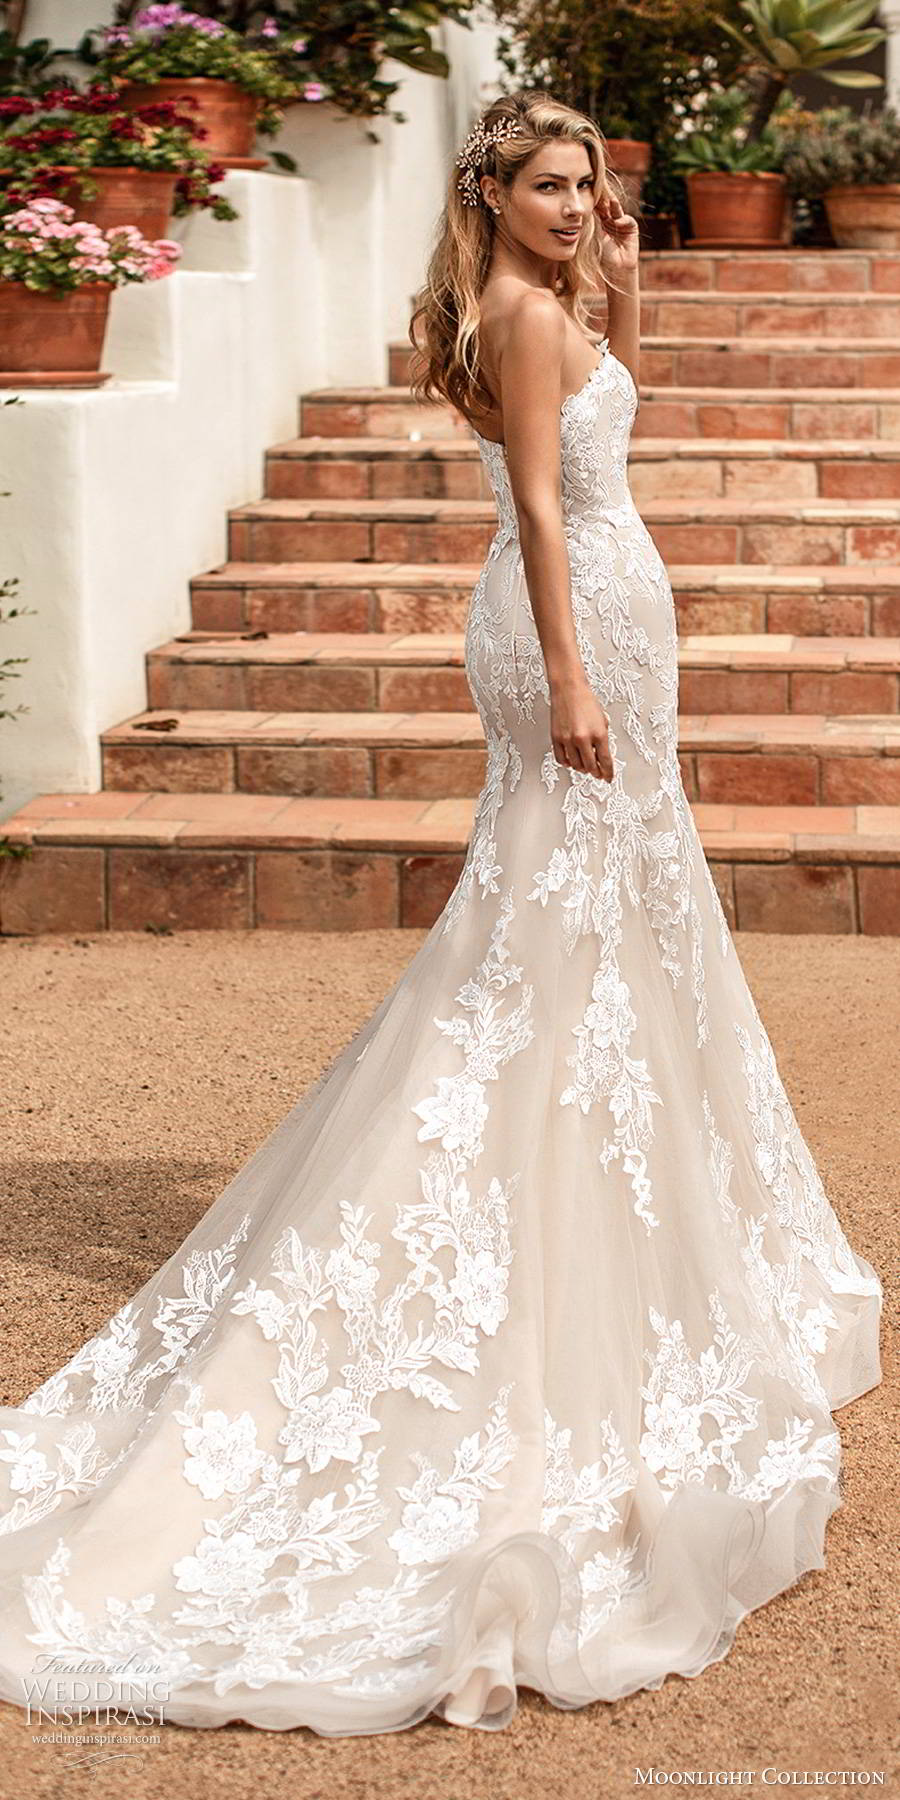 moonlight collection spring 2020 bridal strapless sweetheart fully embellished lace sheath elegant romantic wedding dress chapel train (12) bv